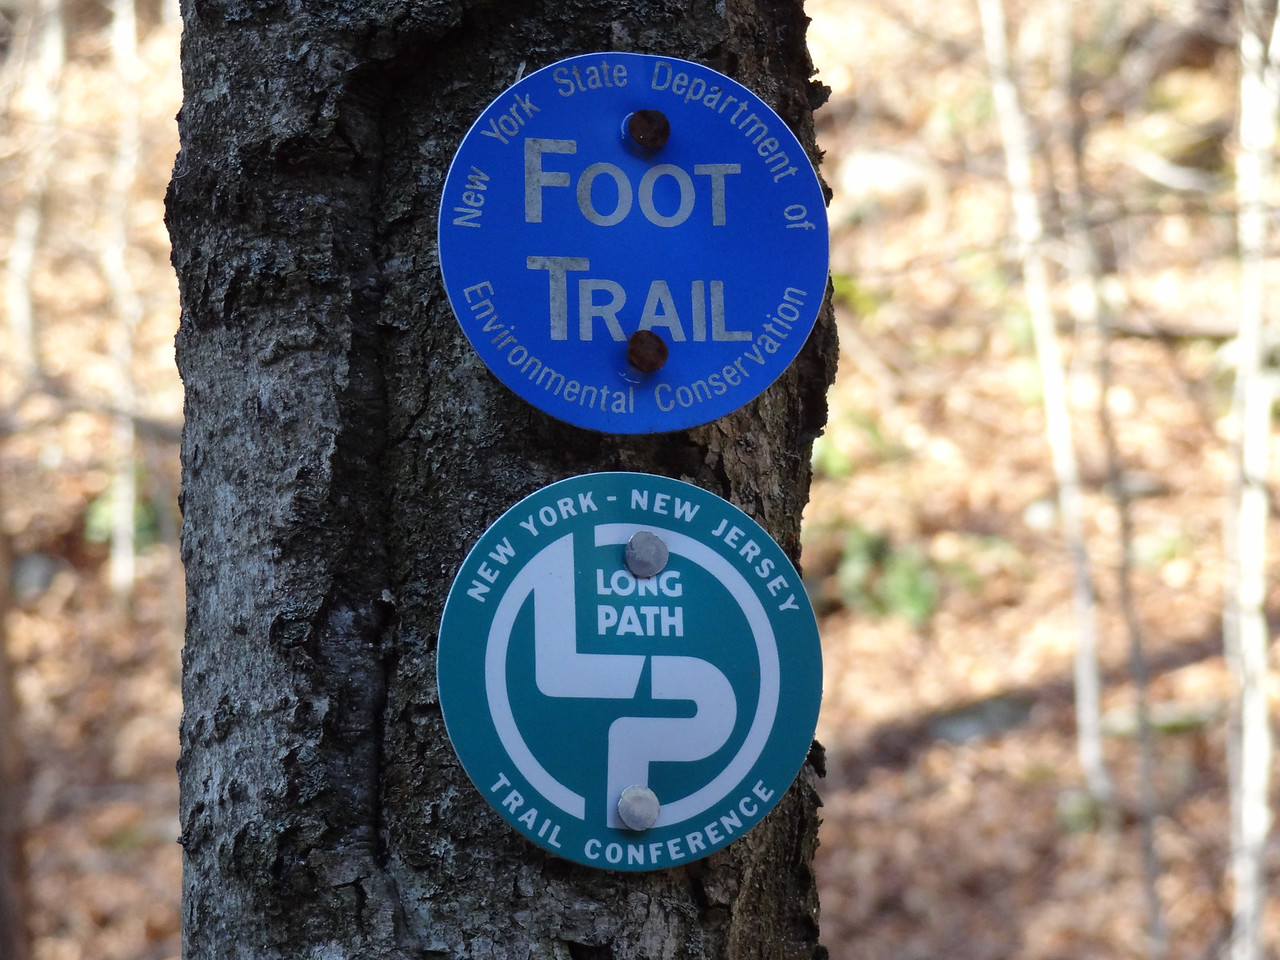 Another line item on my bucket list it to walk the entire Long Path 375 miles from Altamont, NY (SW of Albany) all the way to the George Washington Bridge.